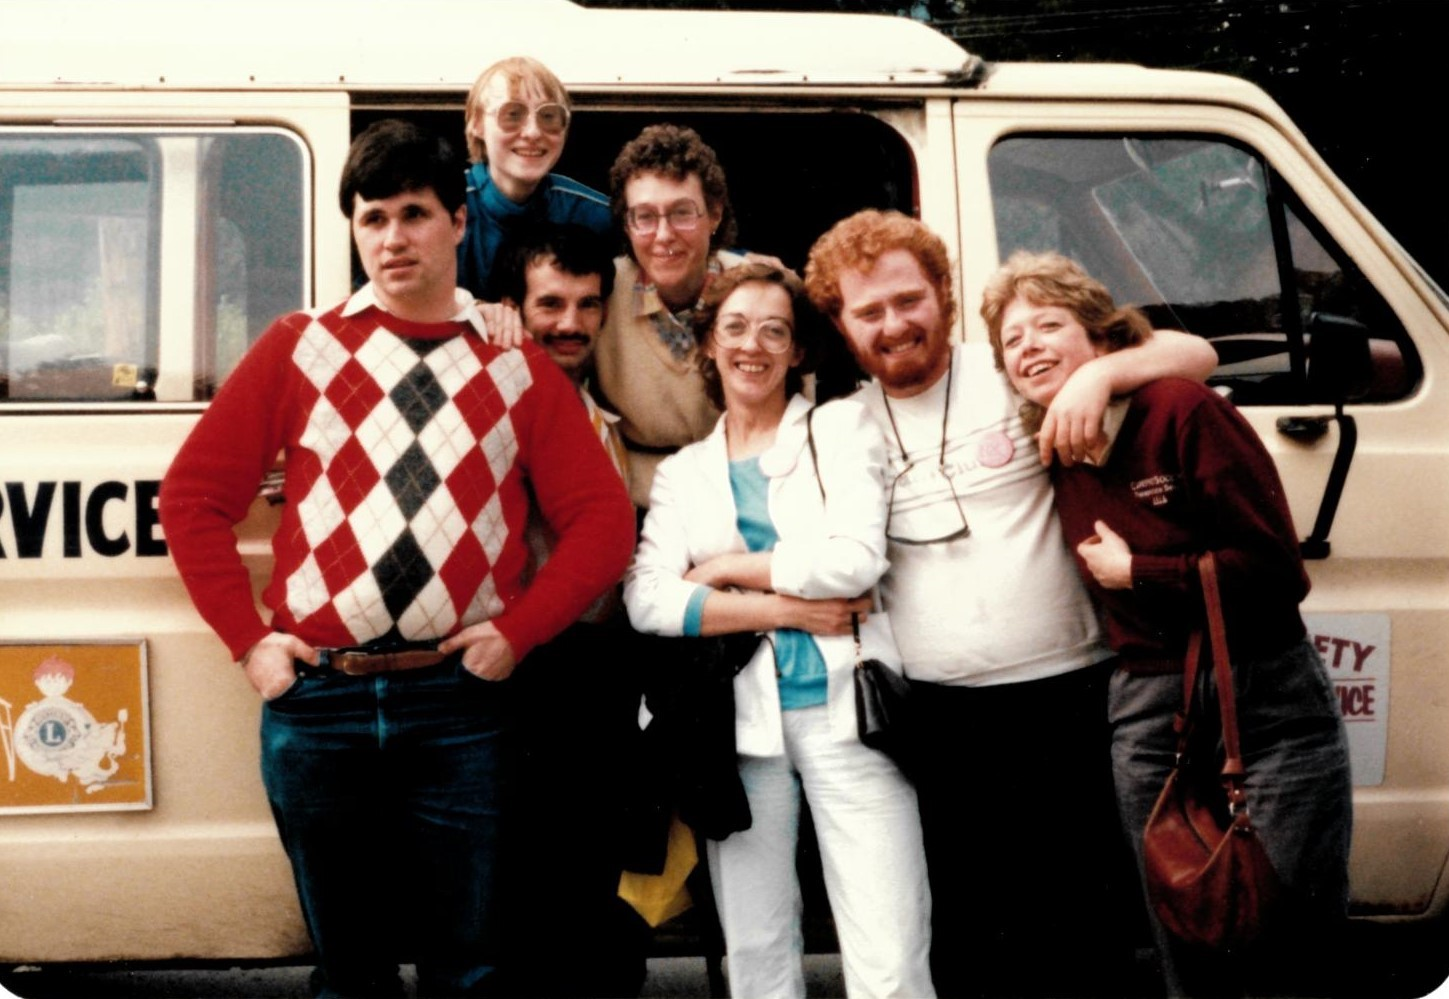 The Carefree Team back in the 80's.